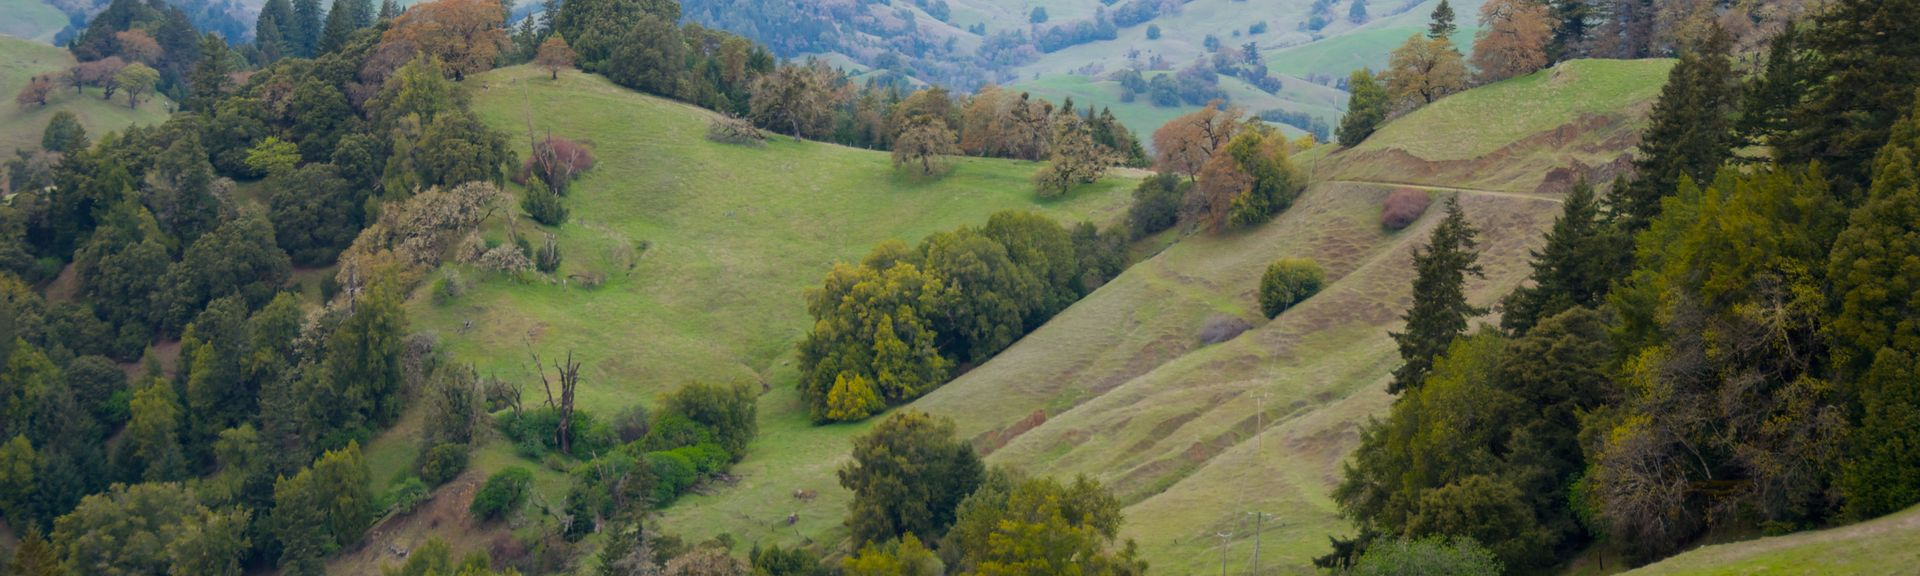 Glen Ellen, California, United States of America